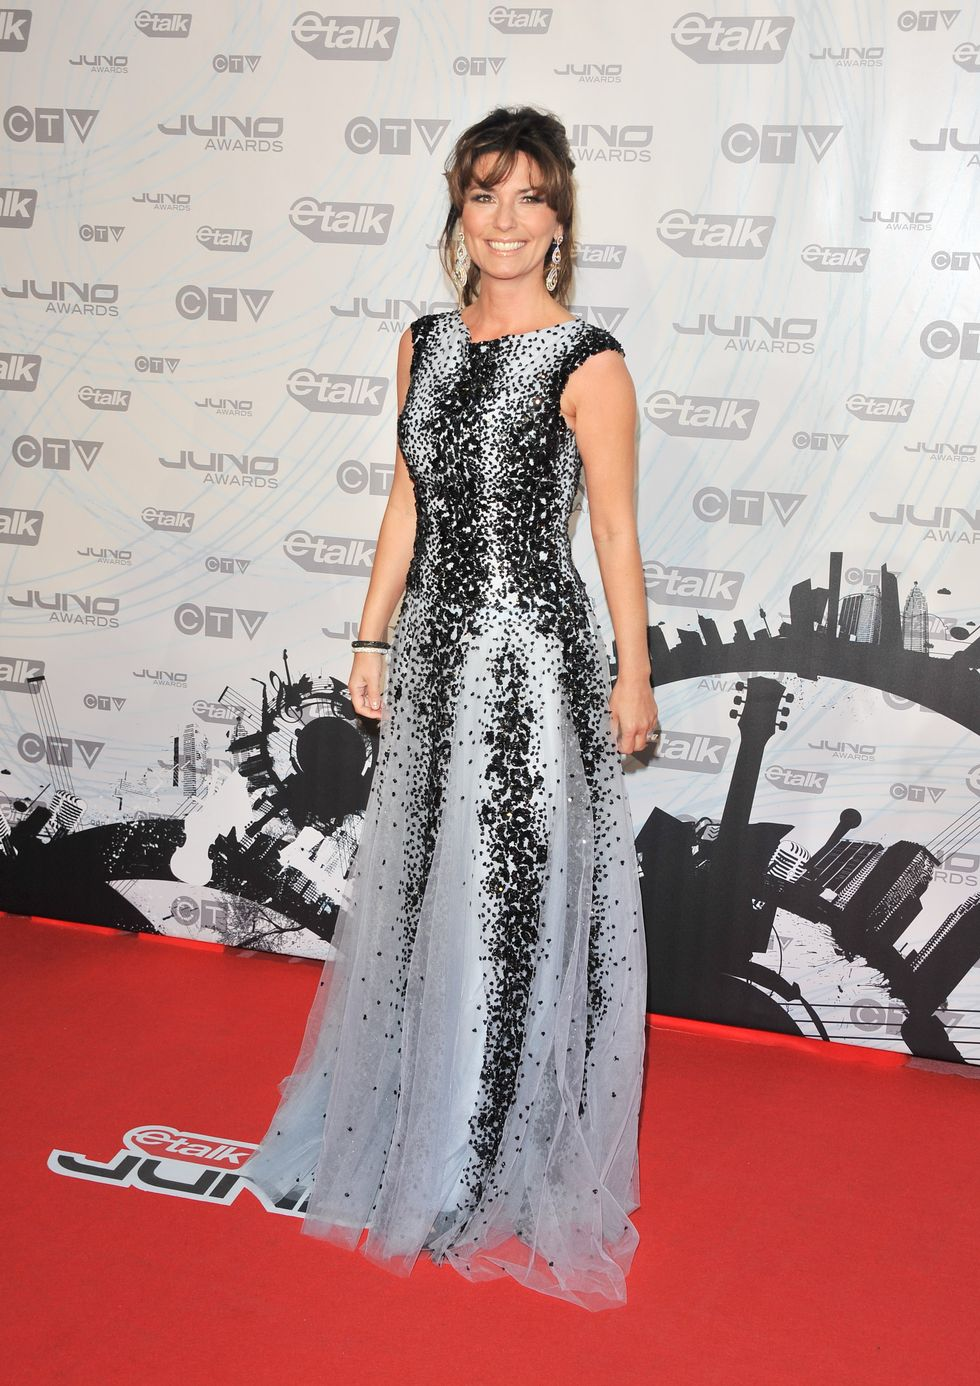 TORONTO, ON - MARCH 27:  Singer/Canadian music Hall of Fame Inductee Shania Twain poses on the red carpet at the 2011 Juno Awards at the Air Canada Centre on March 27, 2011 in Toronto, Canada.  (Photo by George Pimentel/WireImage)